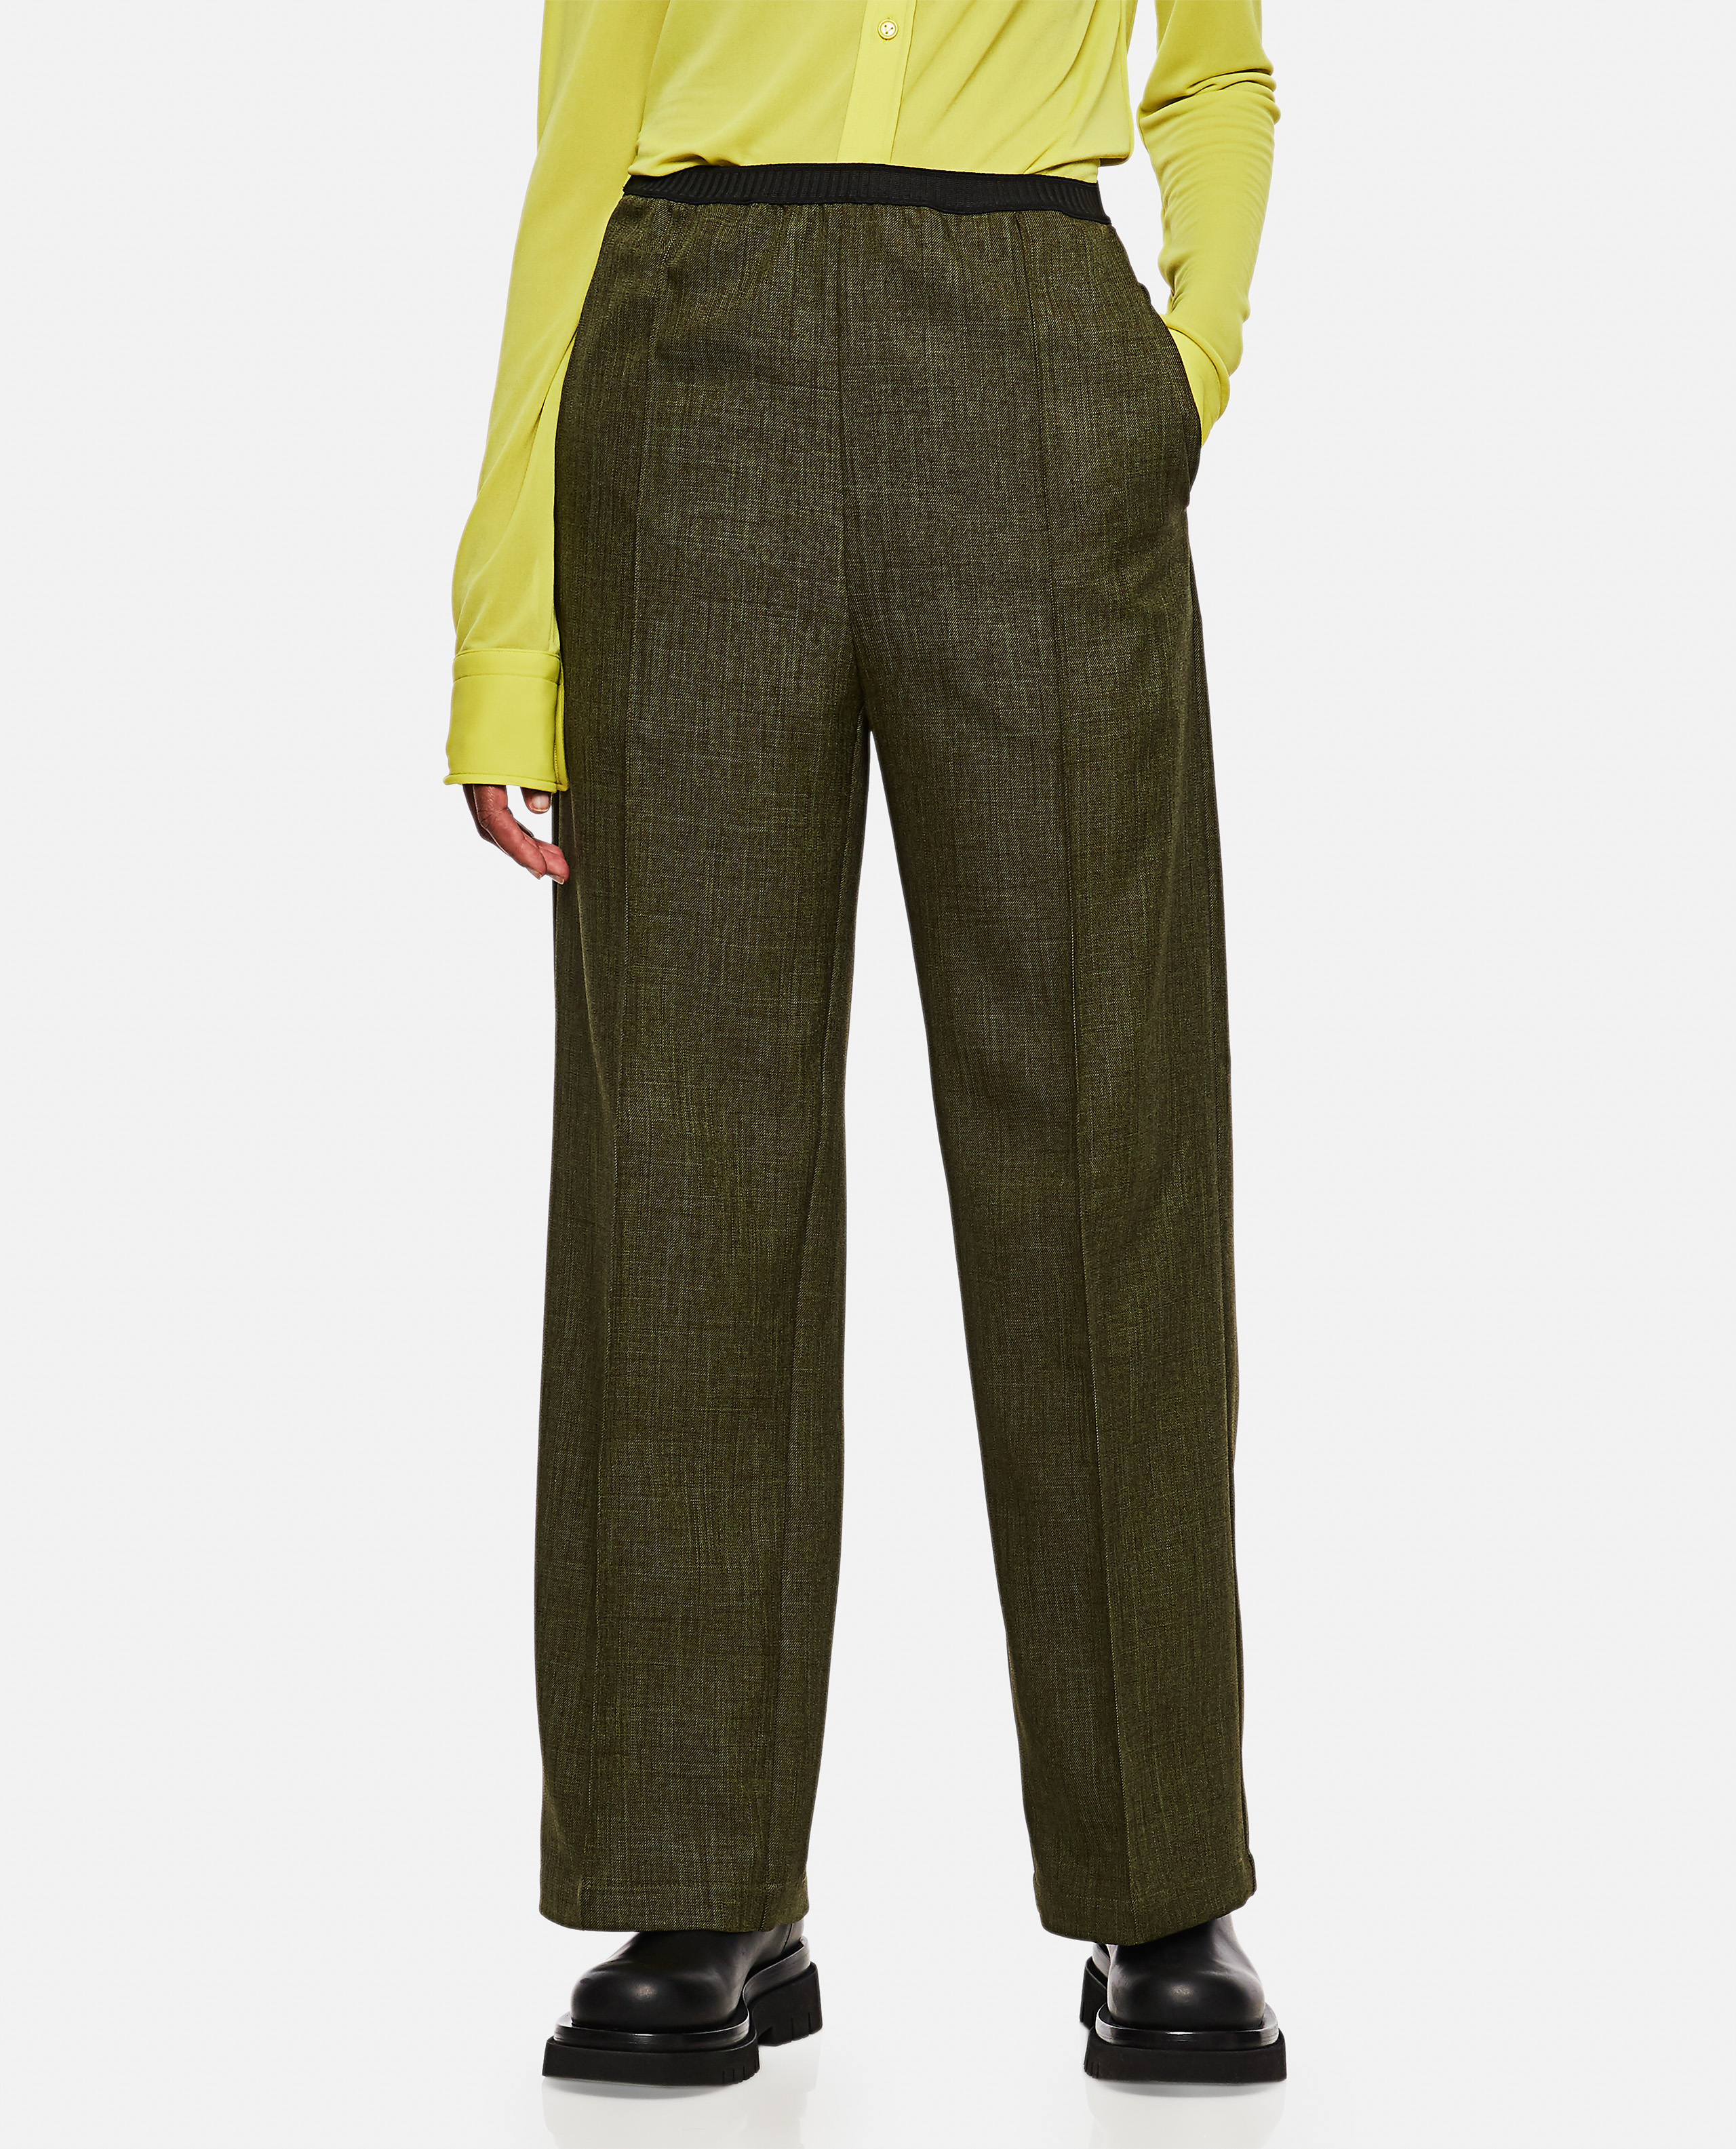 Long comfortable fit trousers